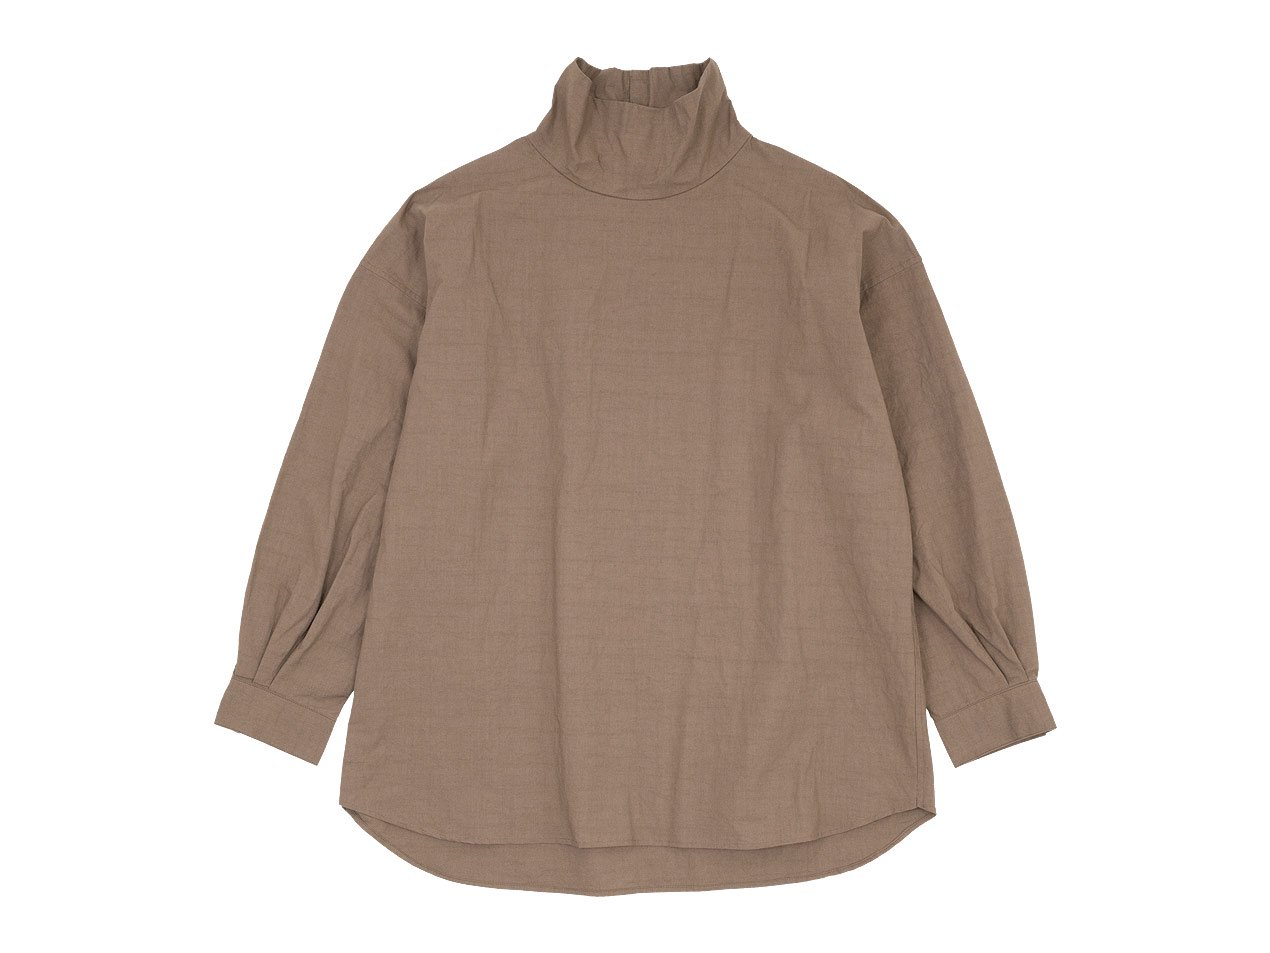 TOUJOURS High Neck Big Shirt 32Café au Lait 【MM33DS01】